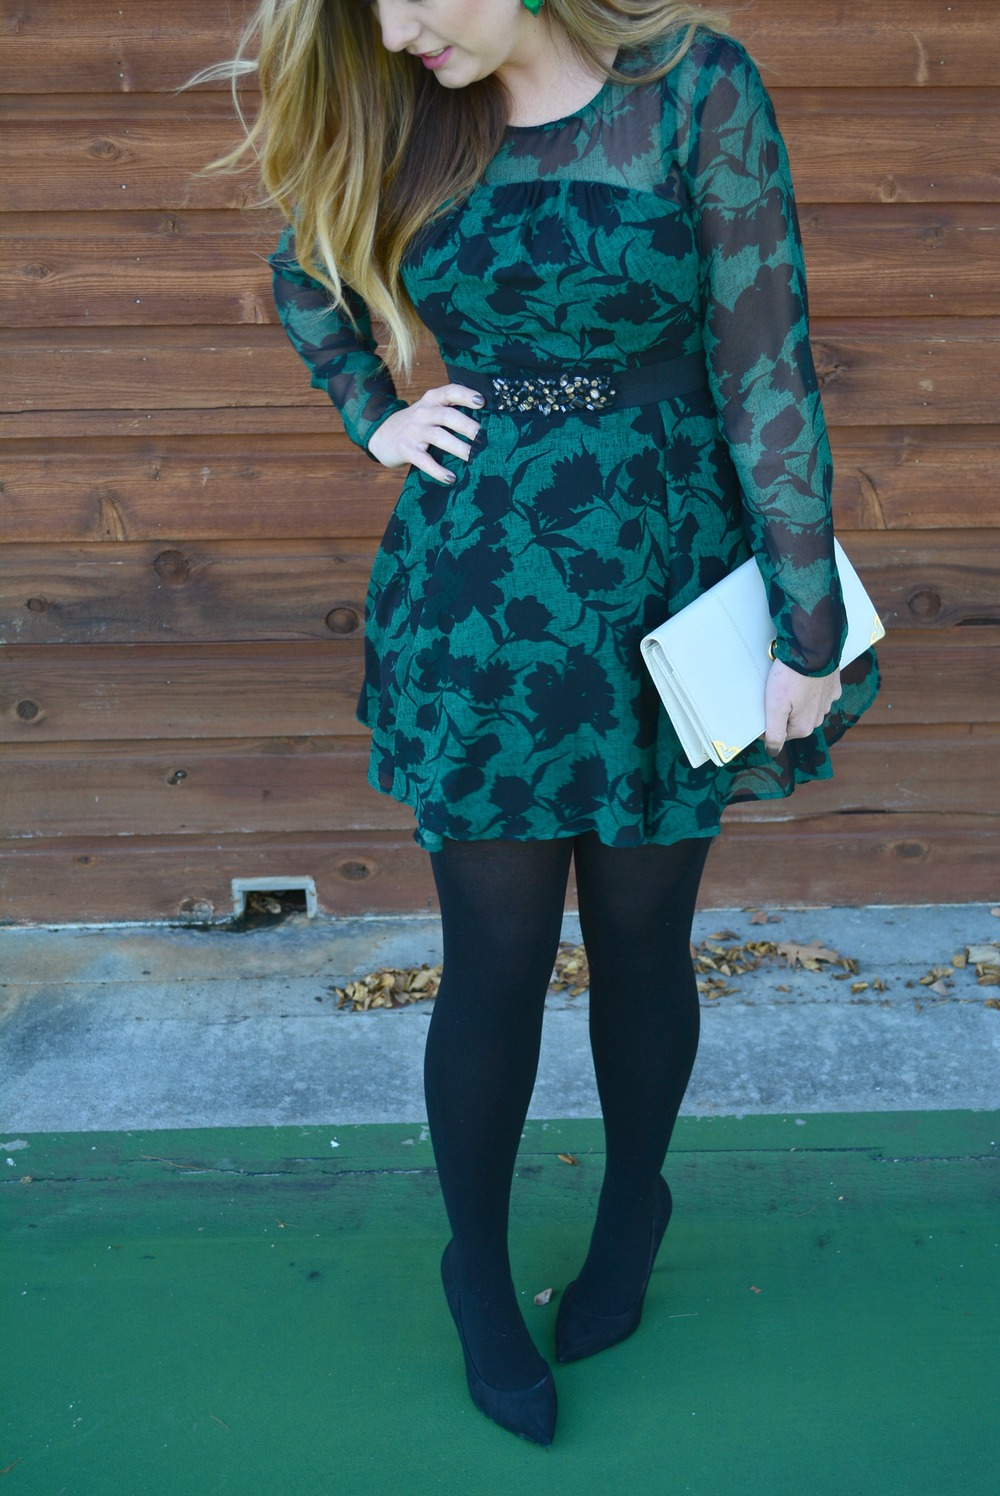 Floral dress with black tights for Holiday